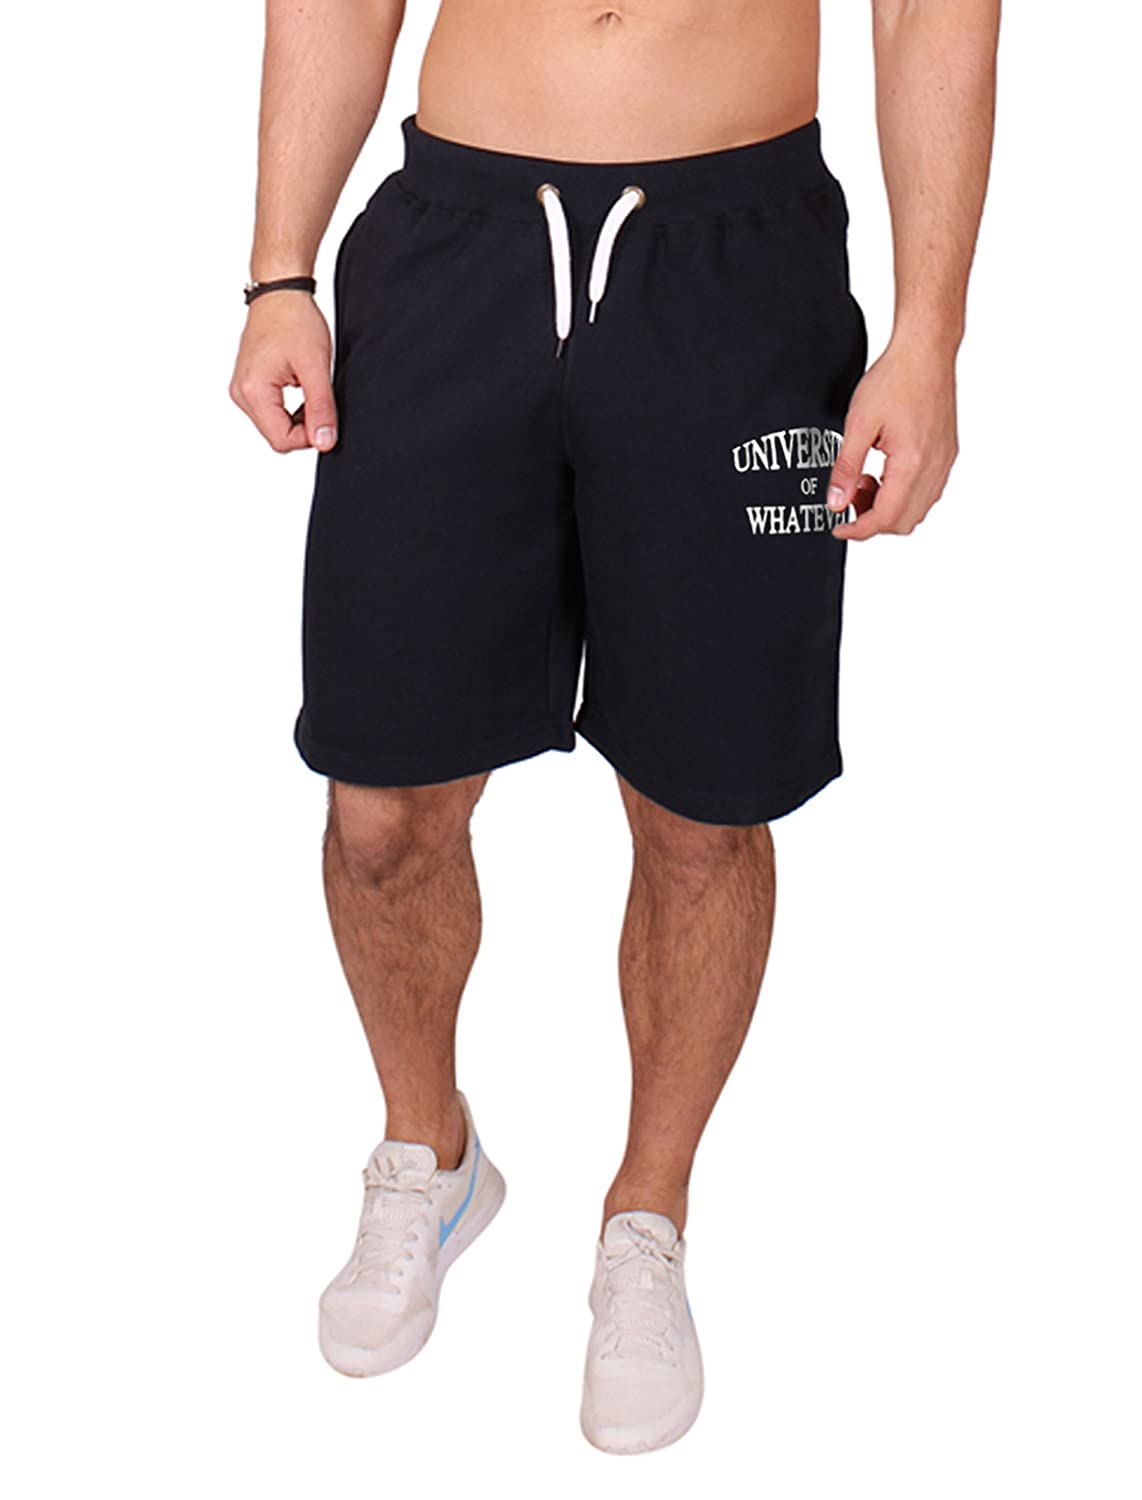 UOW Men's Sweat Shorts - University of Whatever